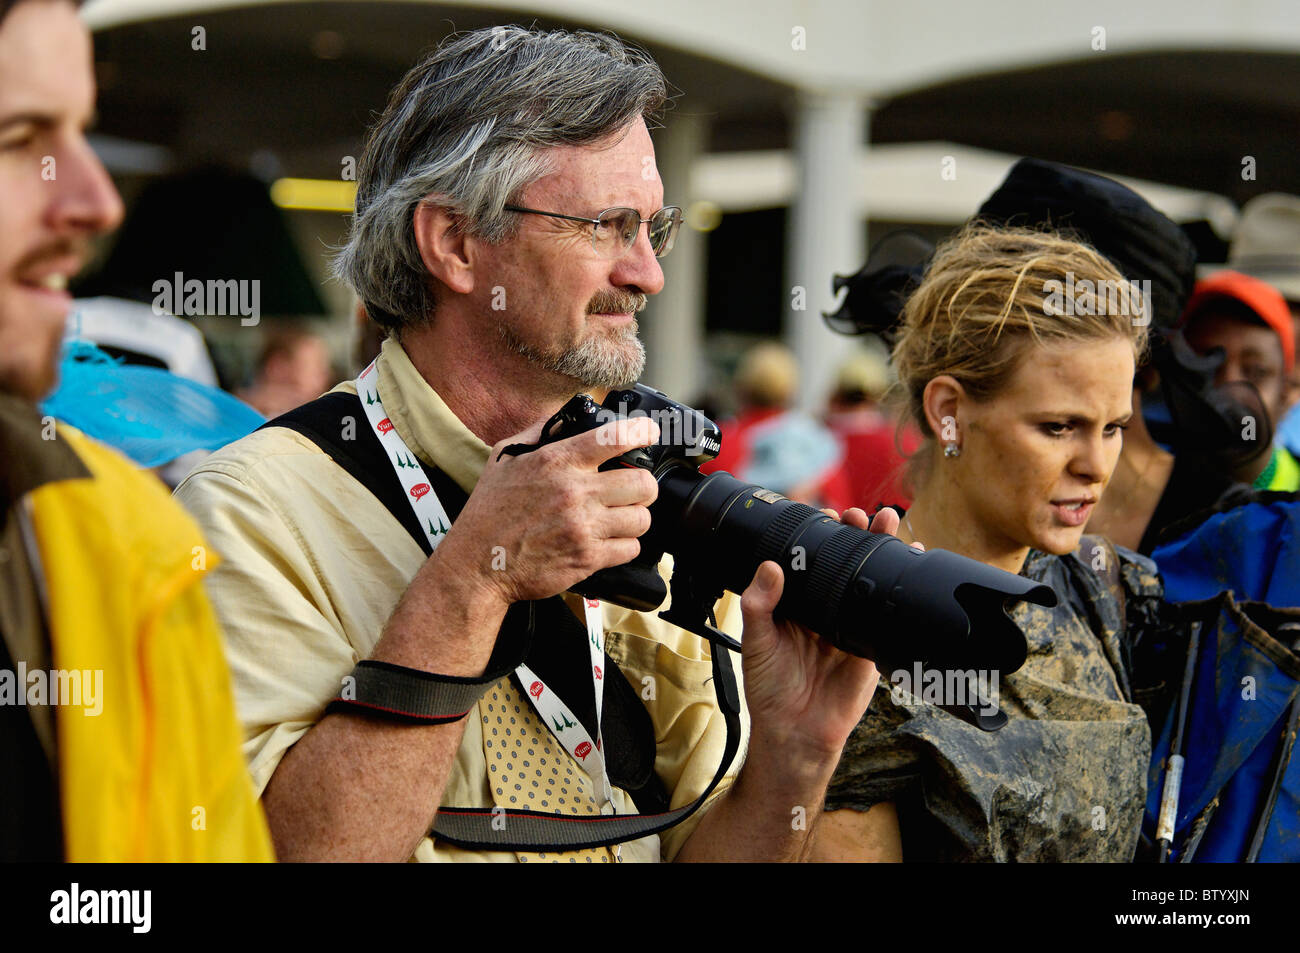 Professional Photographer John Nation Taking Pictures at the 2010 Kentucky Derby in Louisville, Kentucky - Stock Image